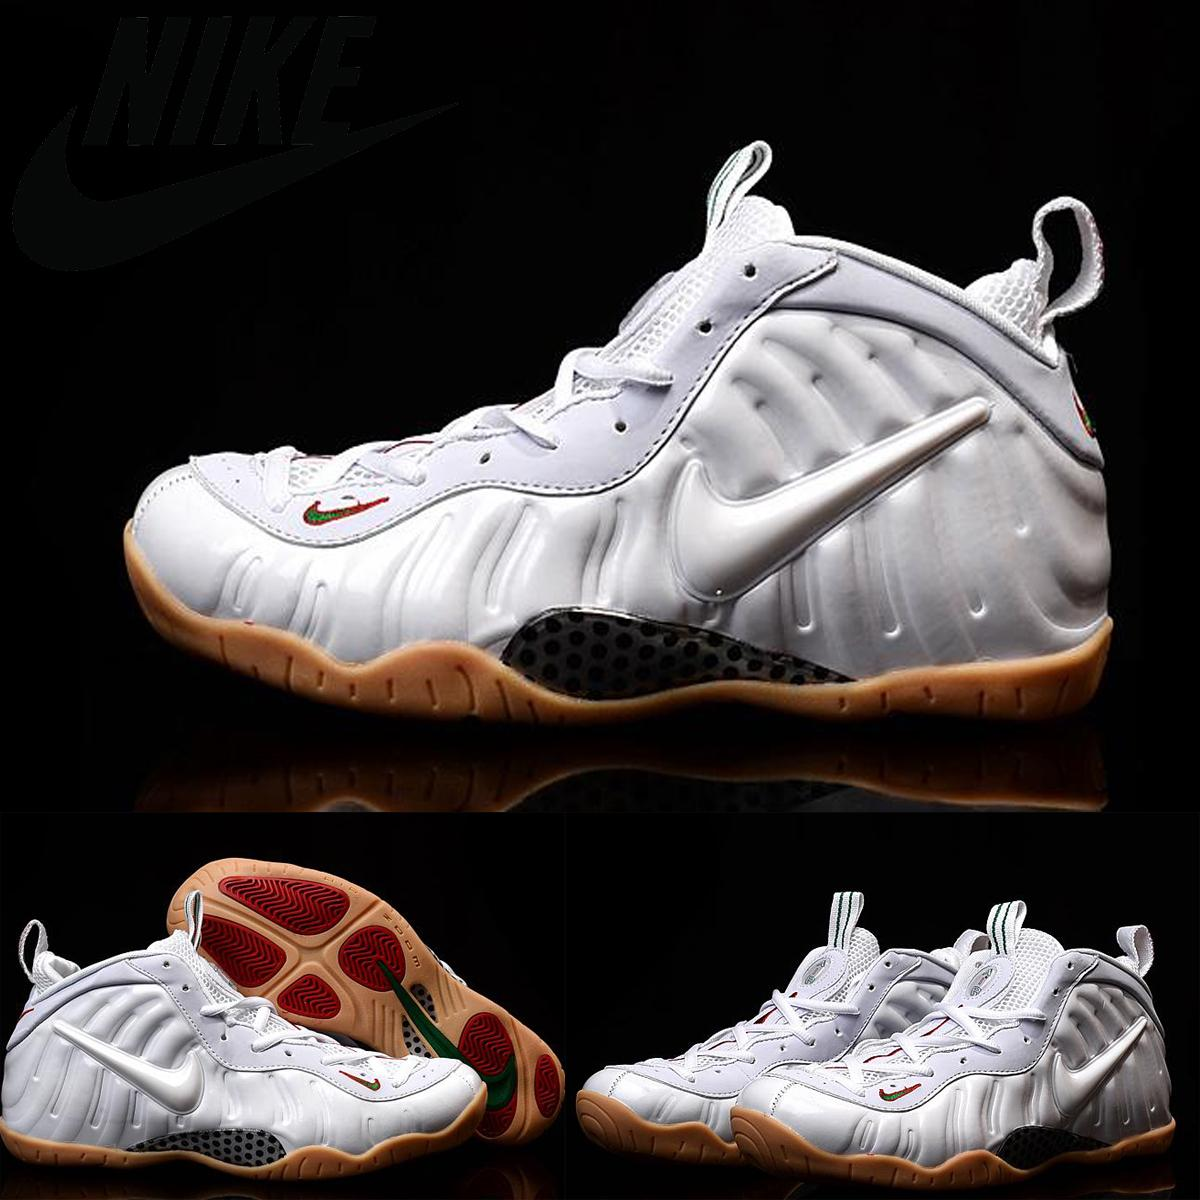 cheap for discount b76c7 e044a Nike Foamposites Pro One Penny Hardaway Men Shoes White,Wholesale Original  Quality Air Foamposite Shoes Basketball Sneakers Kids Sneakers Shoes  Basketball ...